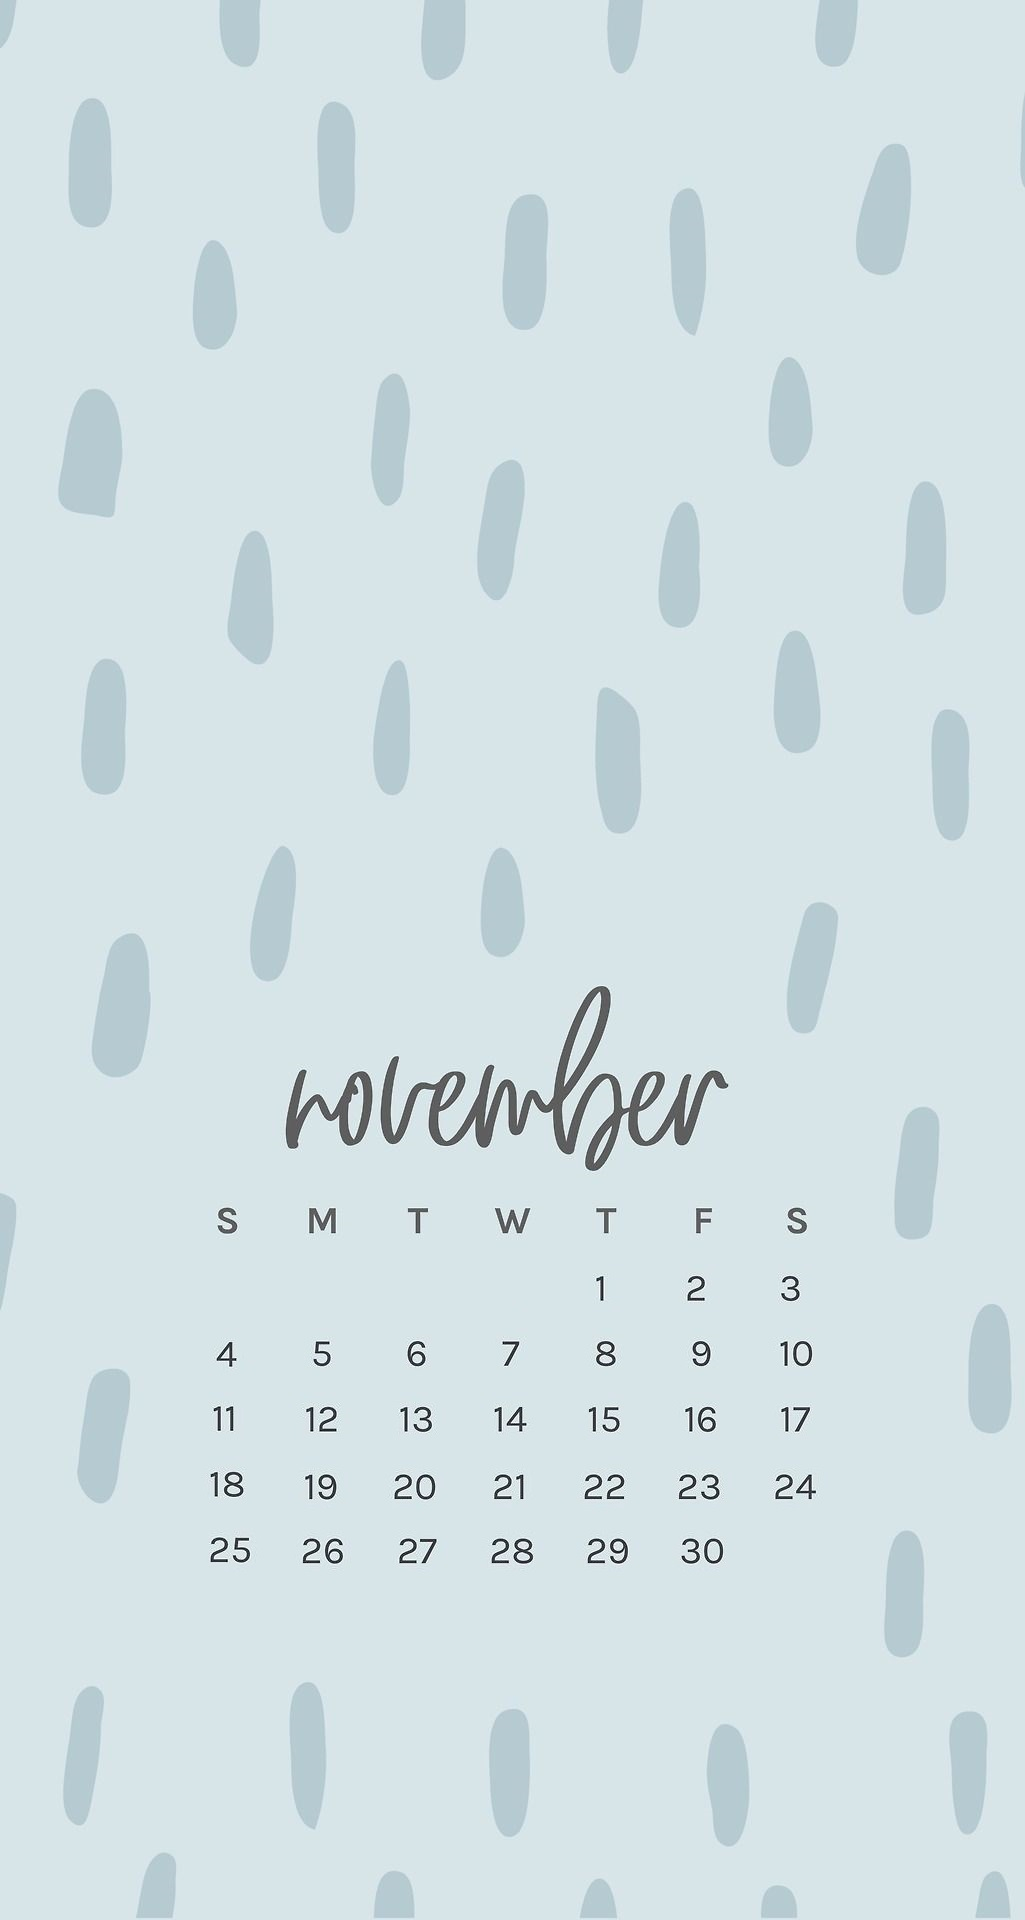 Free November 2018 iPhone Calendar Wallpapers